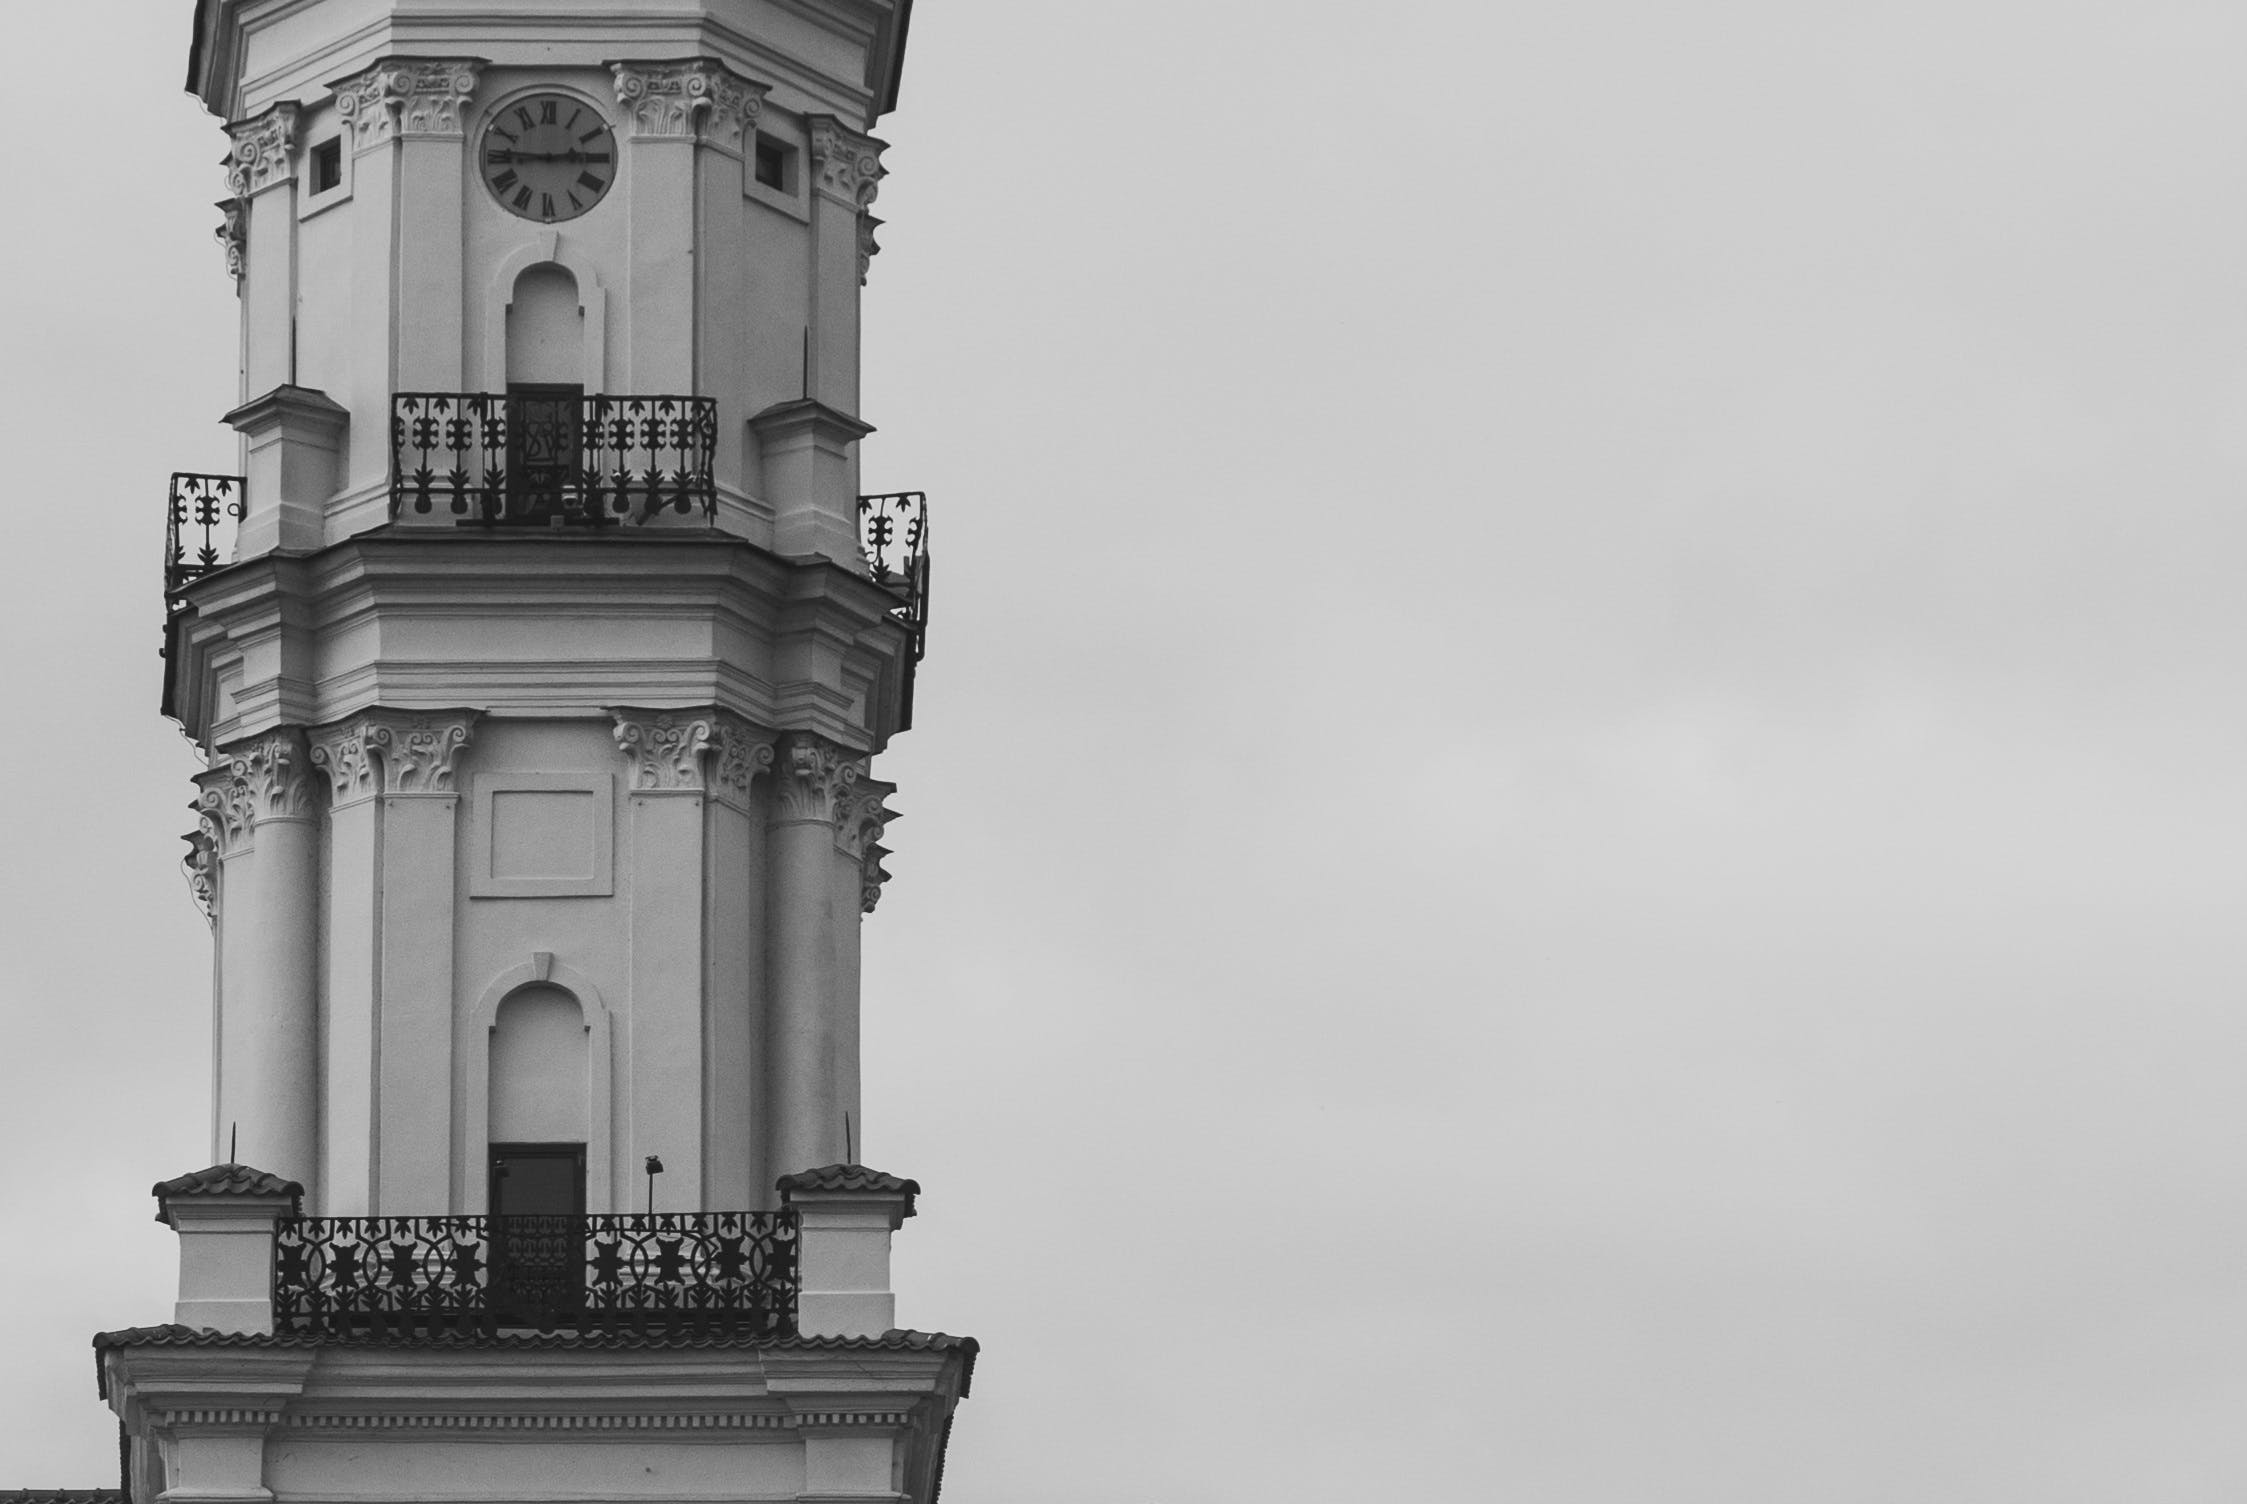 Grayscale Photography of Tower during Daytime